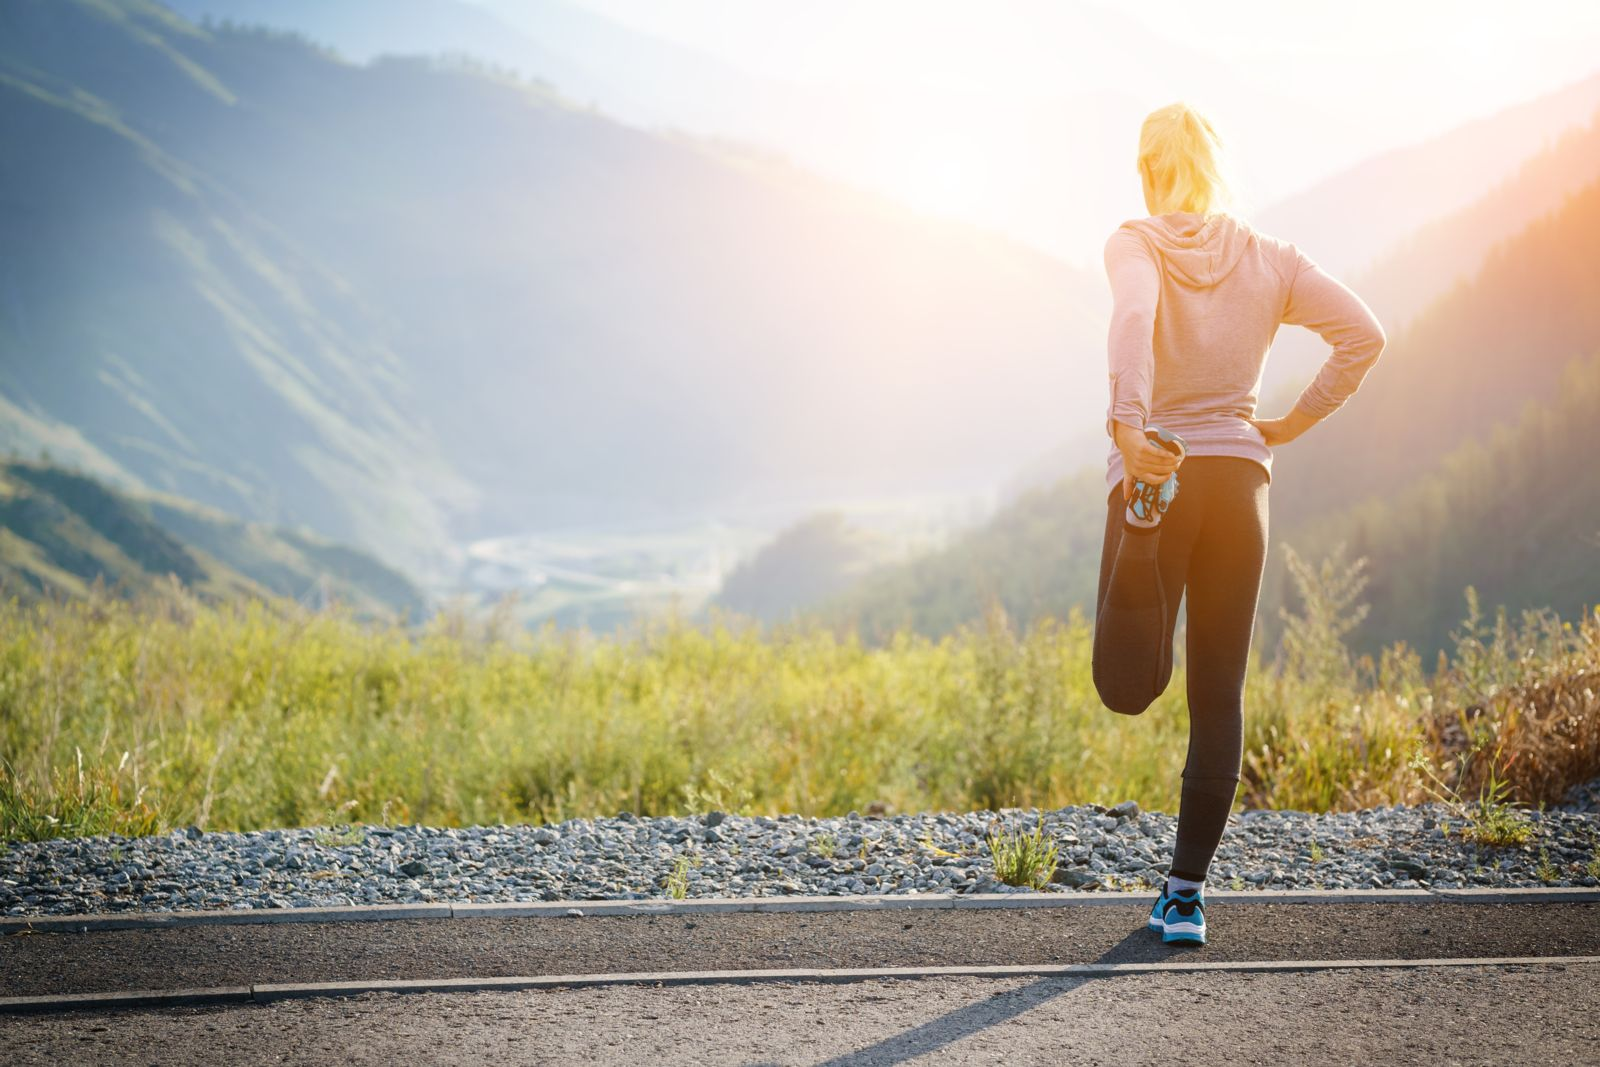 Hitting the road for marathon distance running? Don't forget to prepare the right way to avoid pain and running injuries